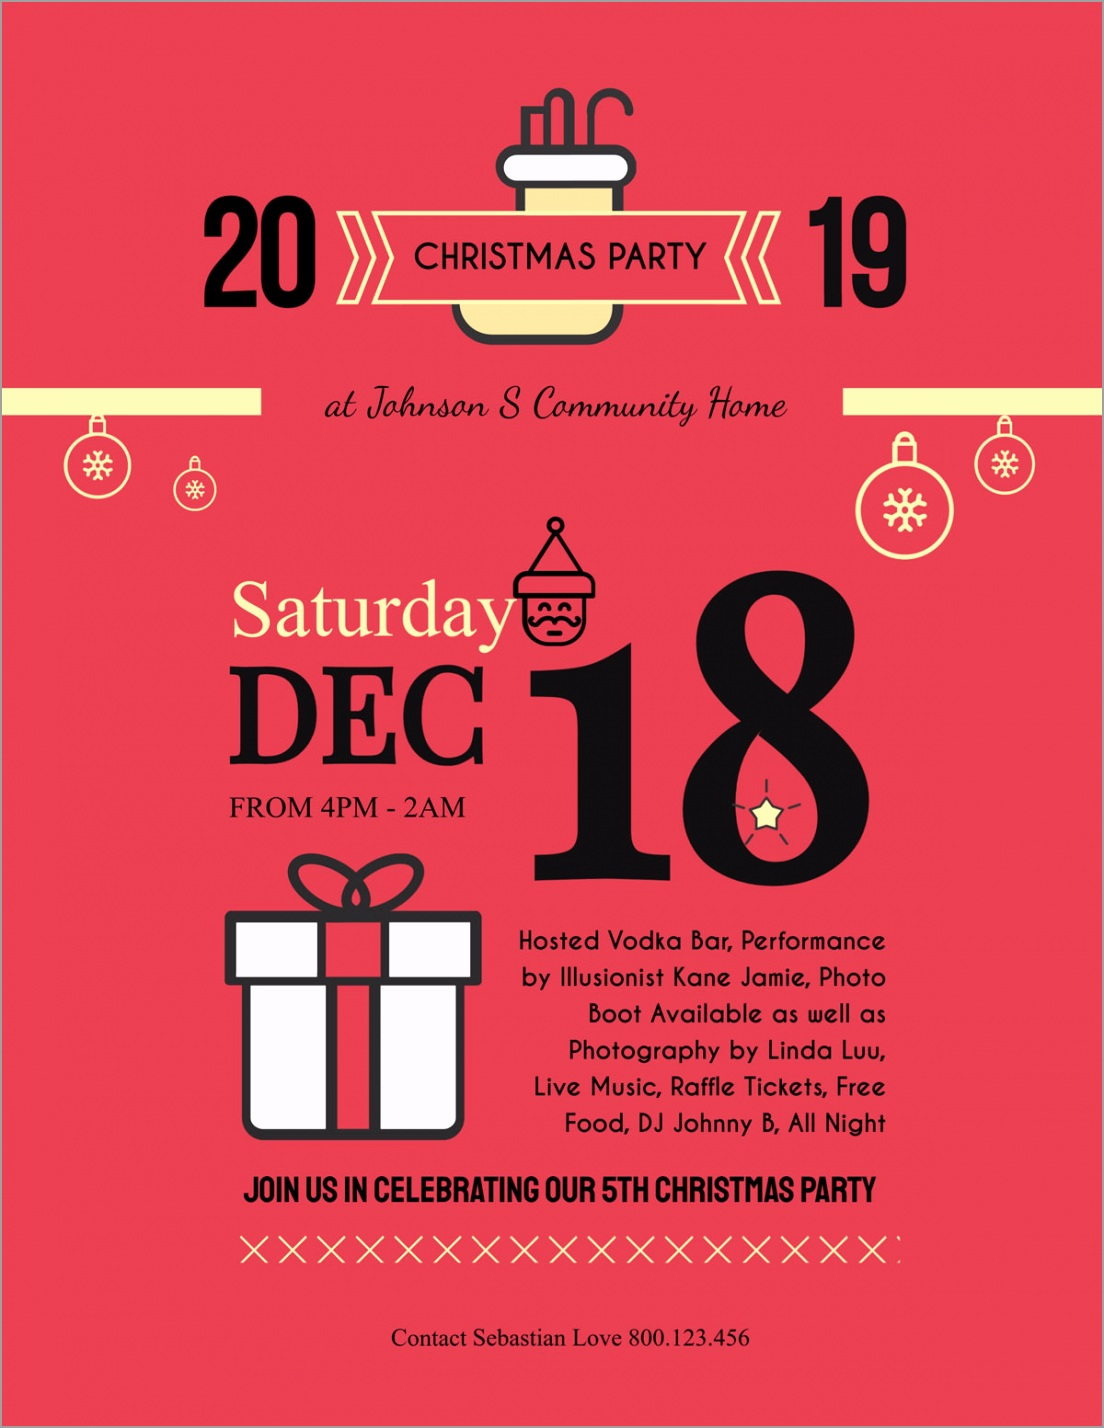 flyer templates christmas party event iuyzy